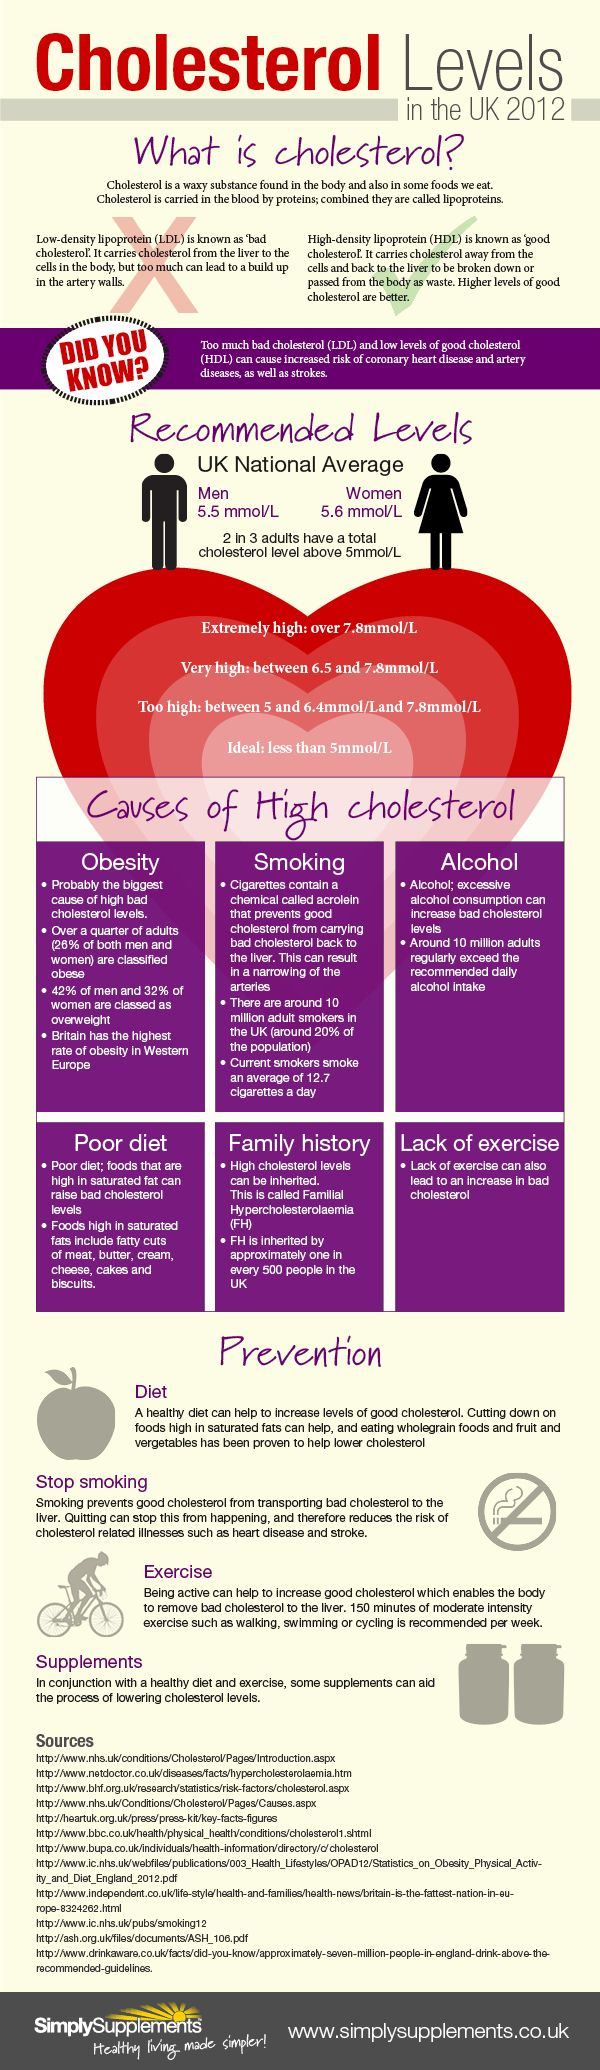 #Cholesterol #Infographic